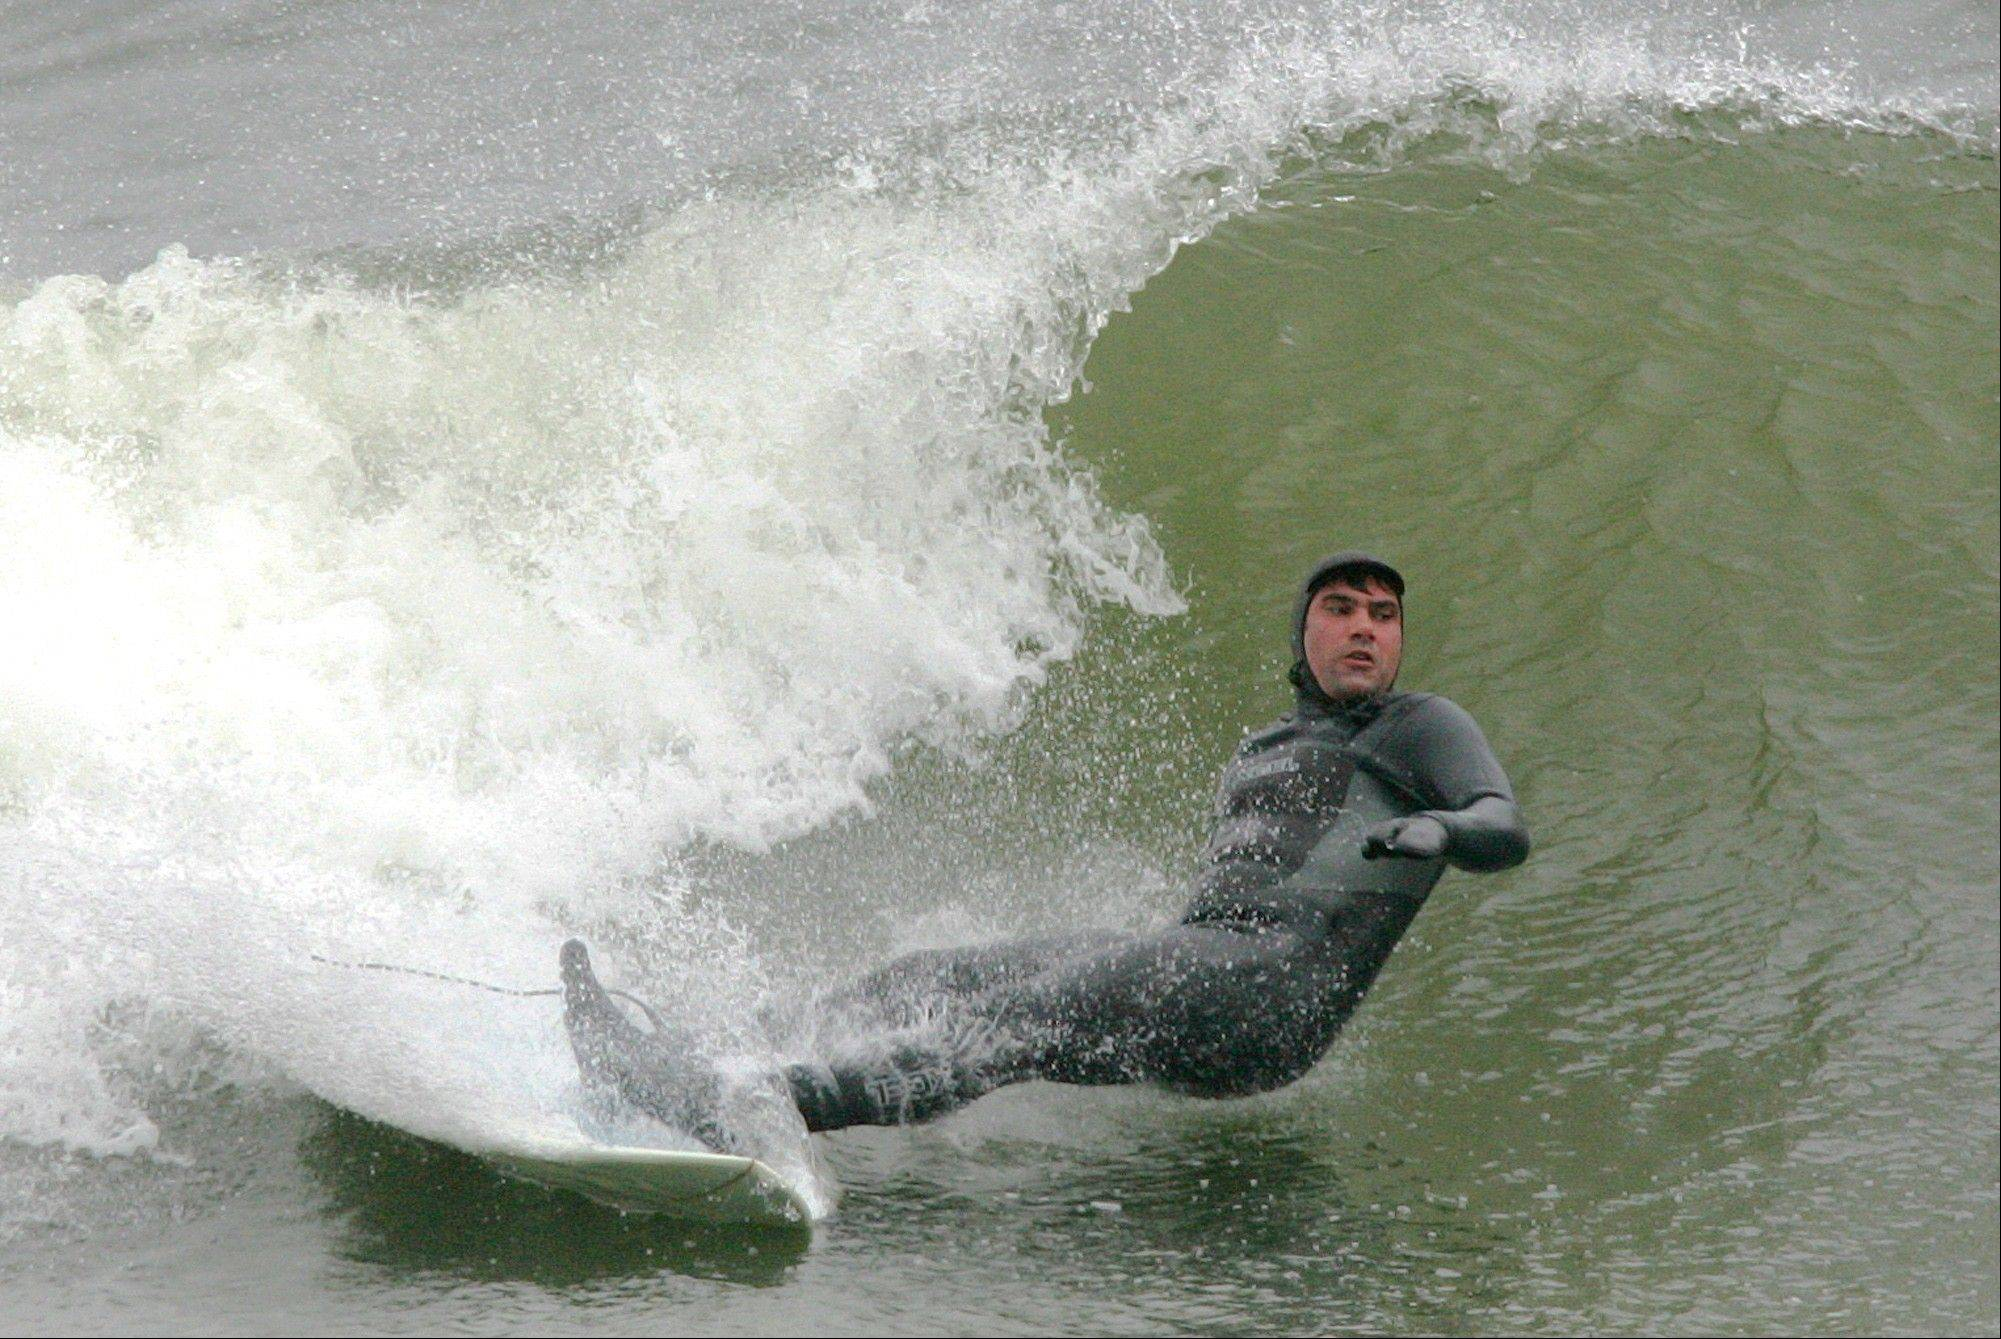 A surfer is seen off the coast line in Hampton, N.H. When the weather gets bad the surfing gets great.